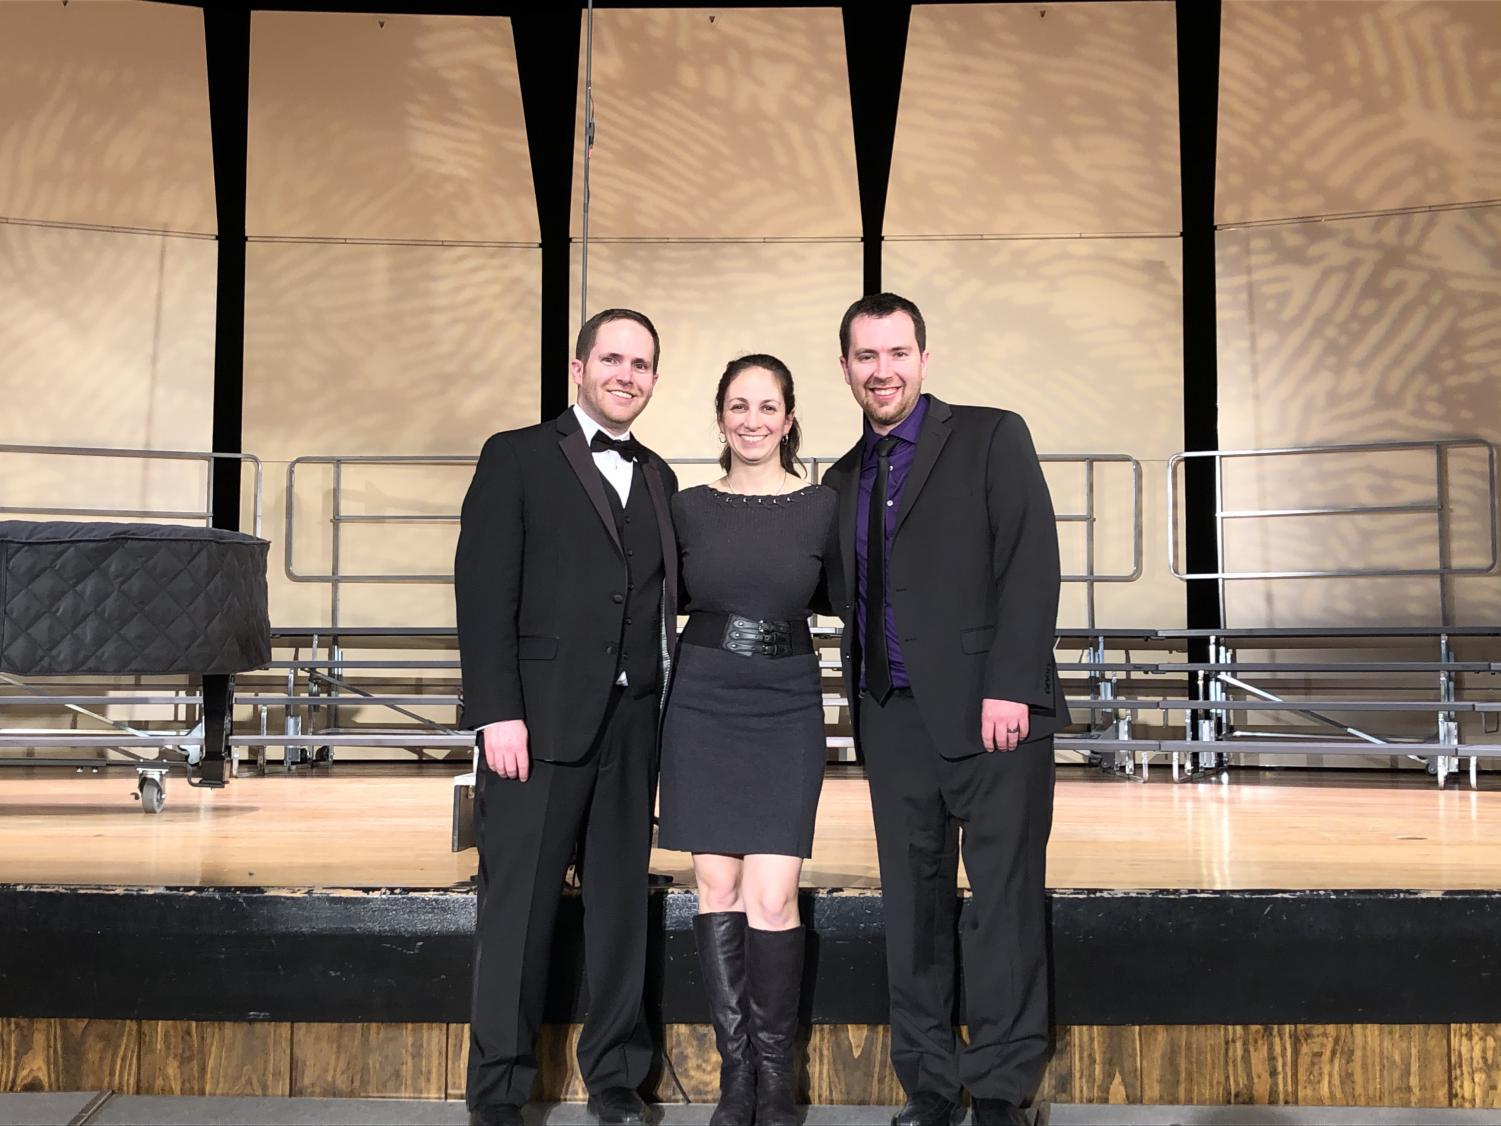 (From left to right) Matthew Klenk, Jennifer Klenk, and Michael Klenk at the NPHS choral showcase on January 14th, 2020